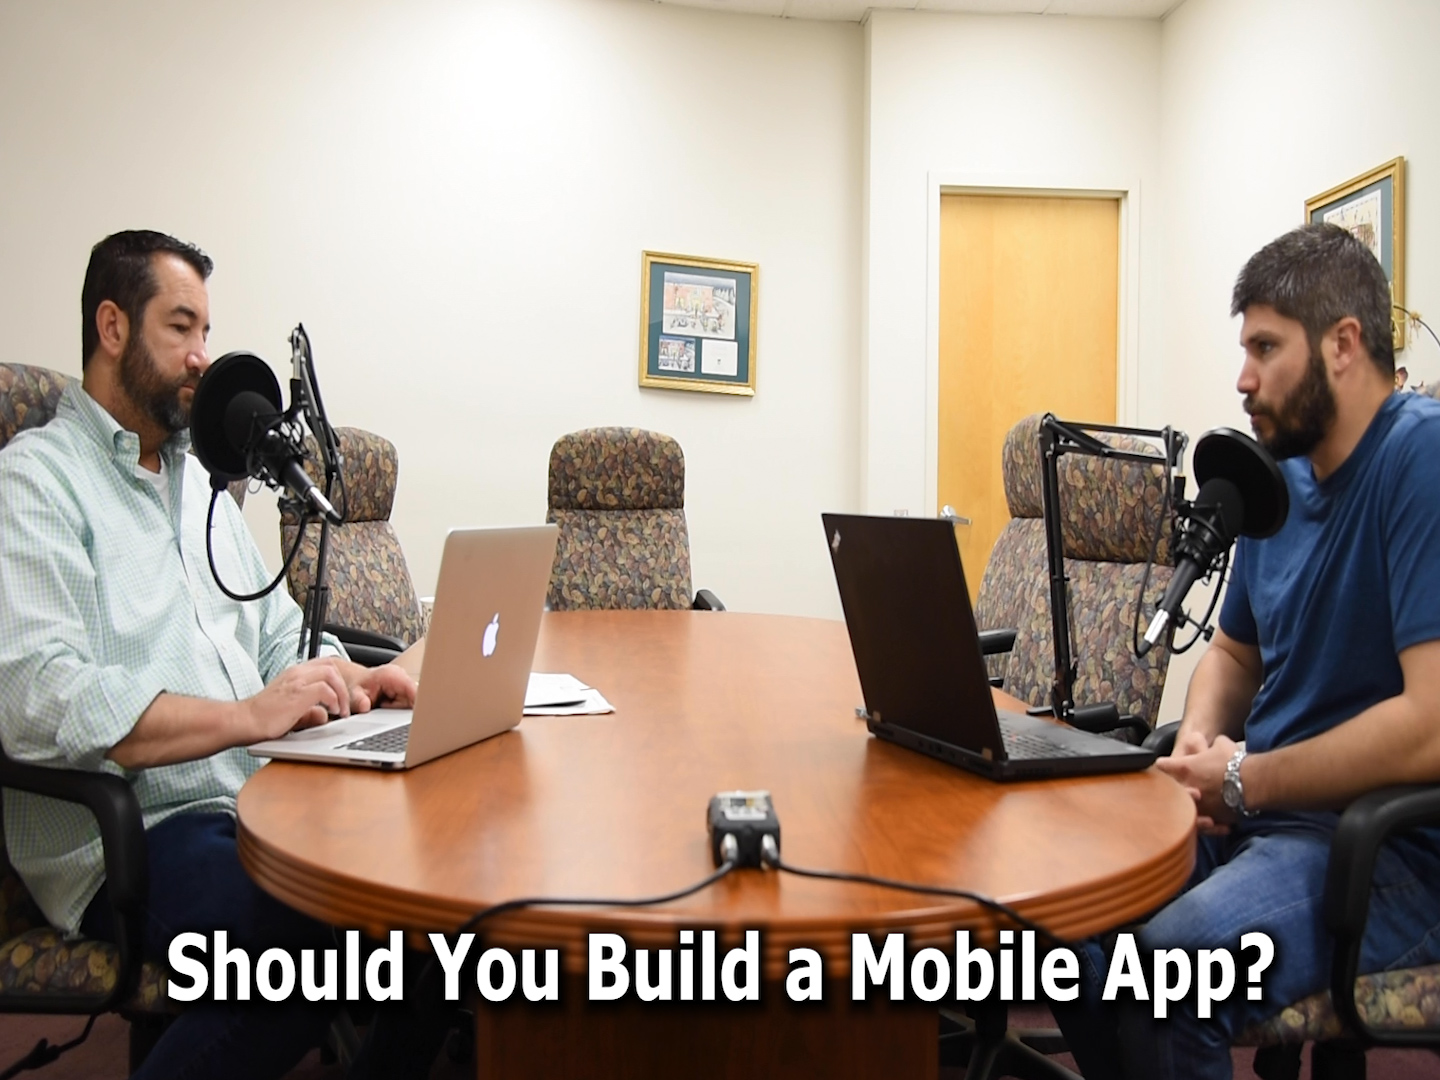 Does Your Business Need a Mobile App? - The Messengers Podcast